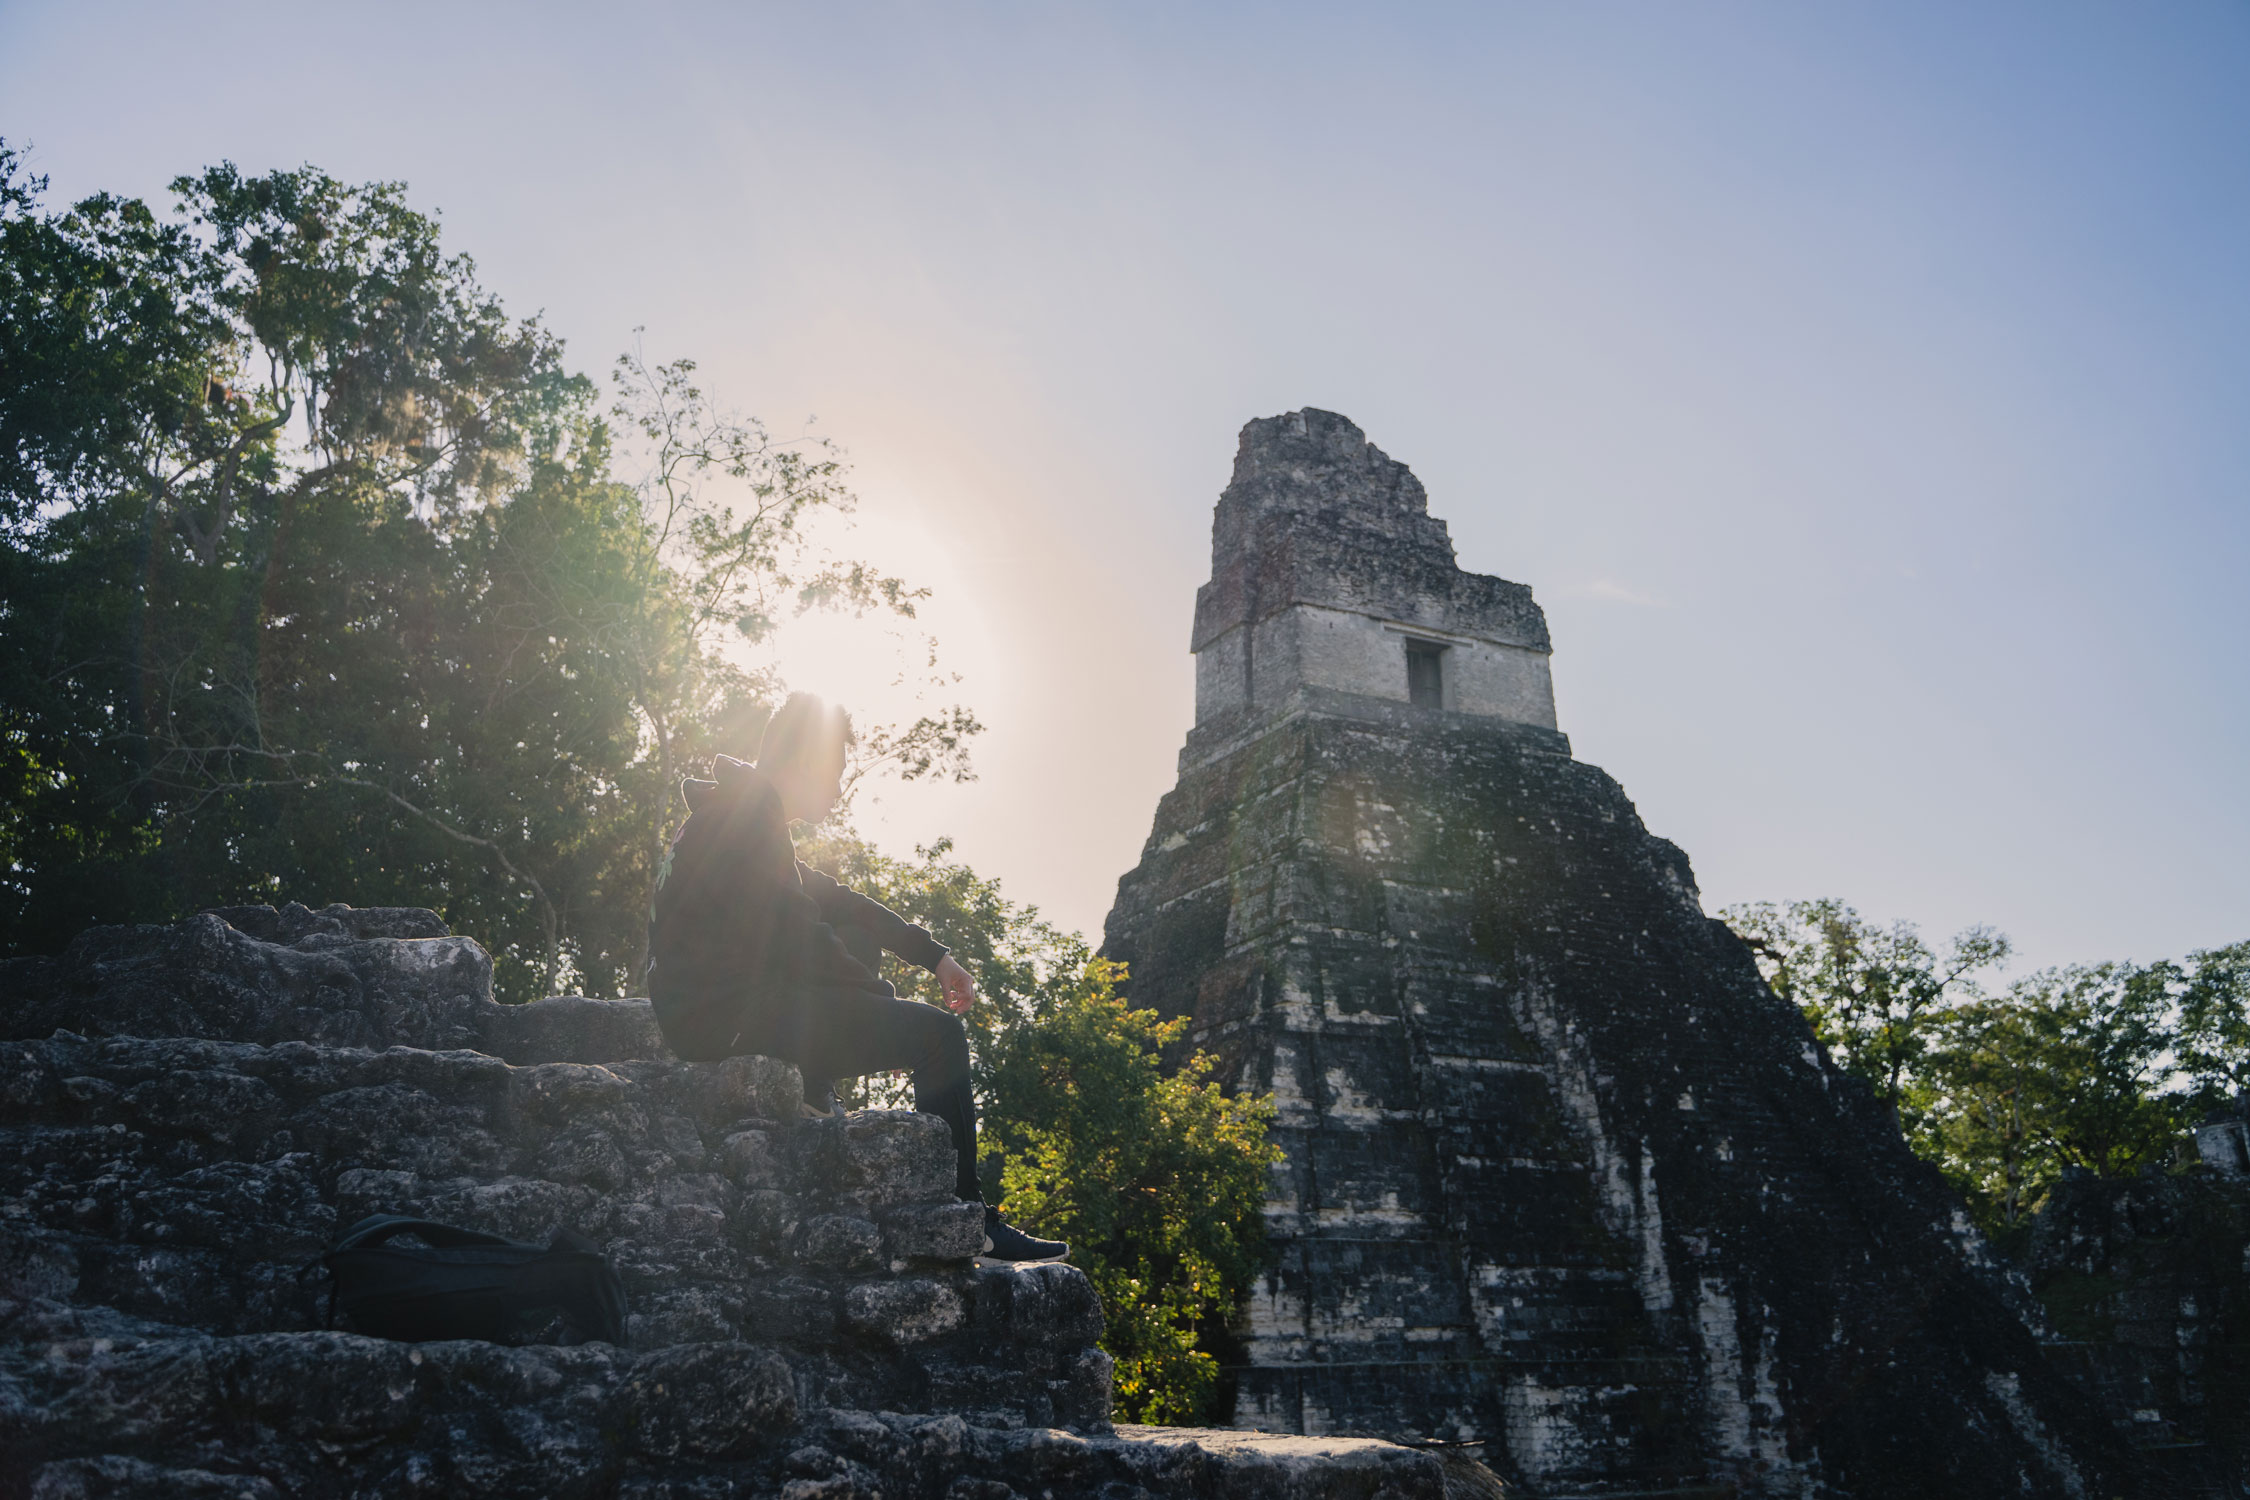 Seeing the Mayan ruins in Tikal is one of the best experiences in Guatemala. Discover the best places to visit in Guatemala and all the cool things to do in Guatemala from this ultimate Guatemala guide.